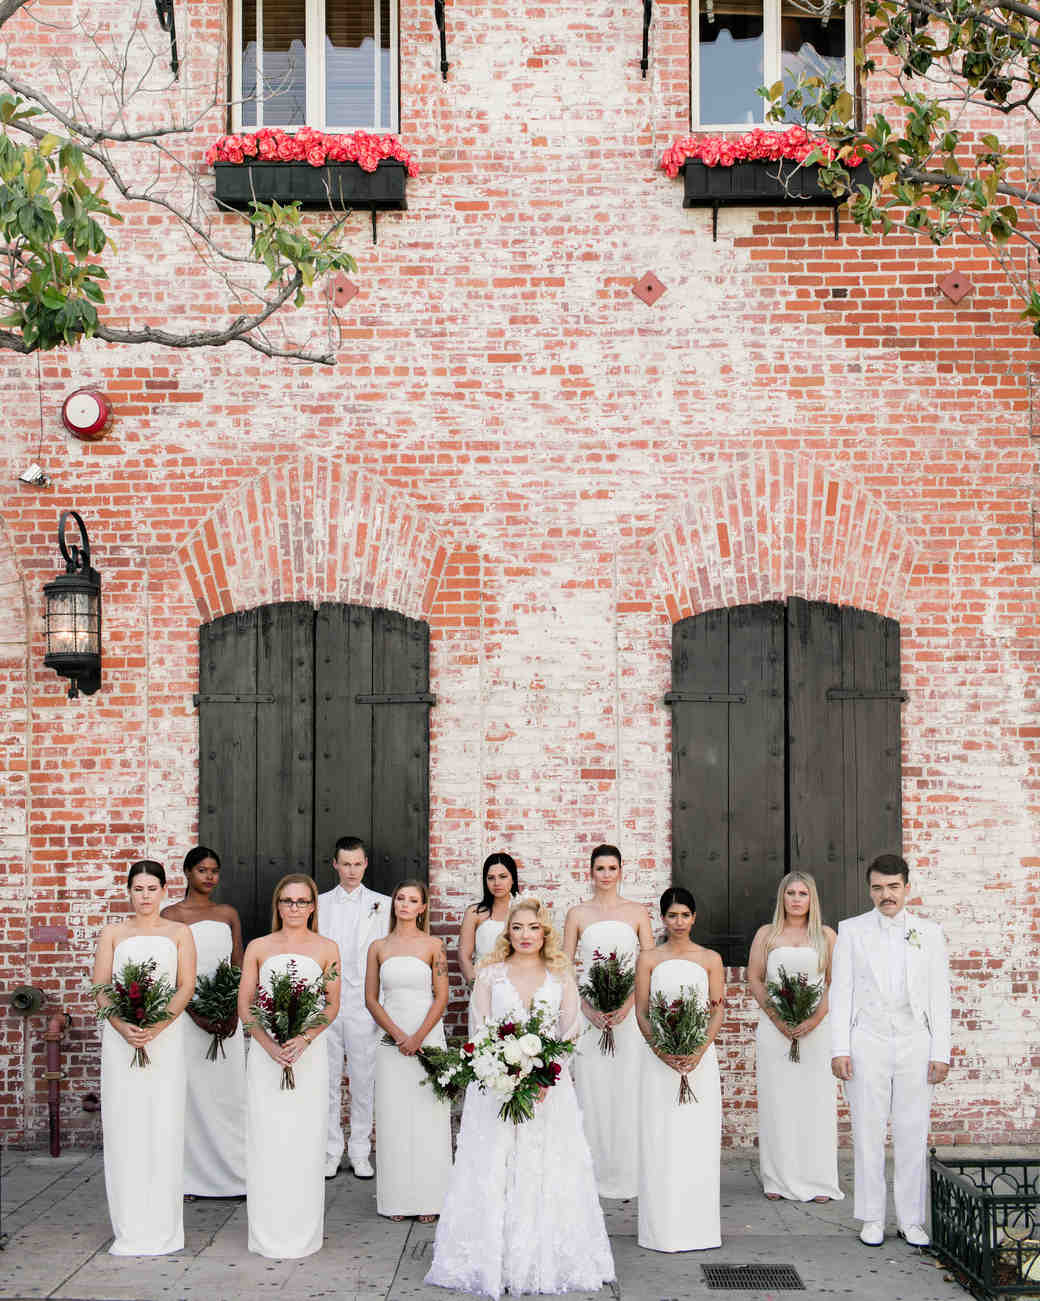 chic bridesmaids simple column white attire